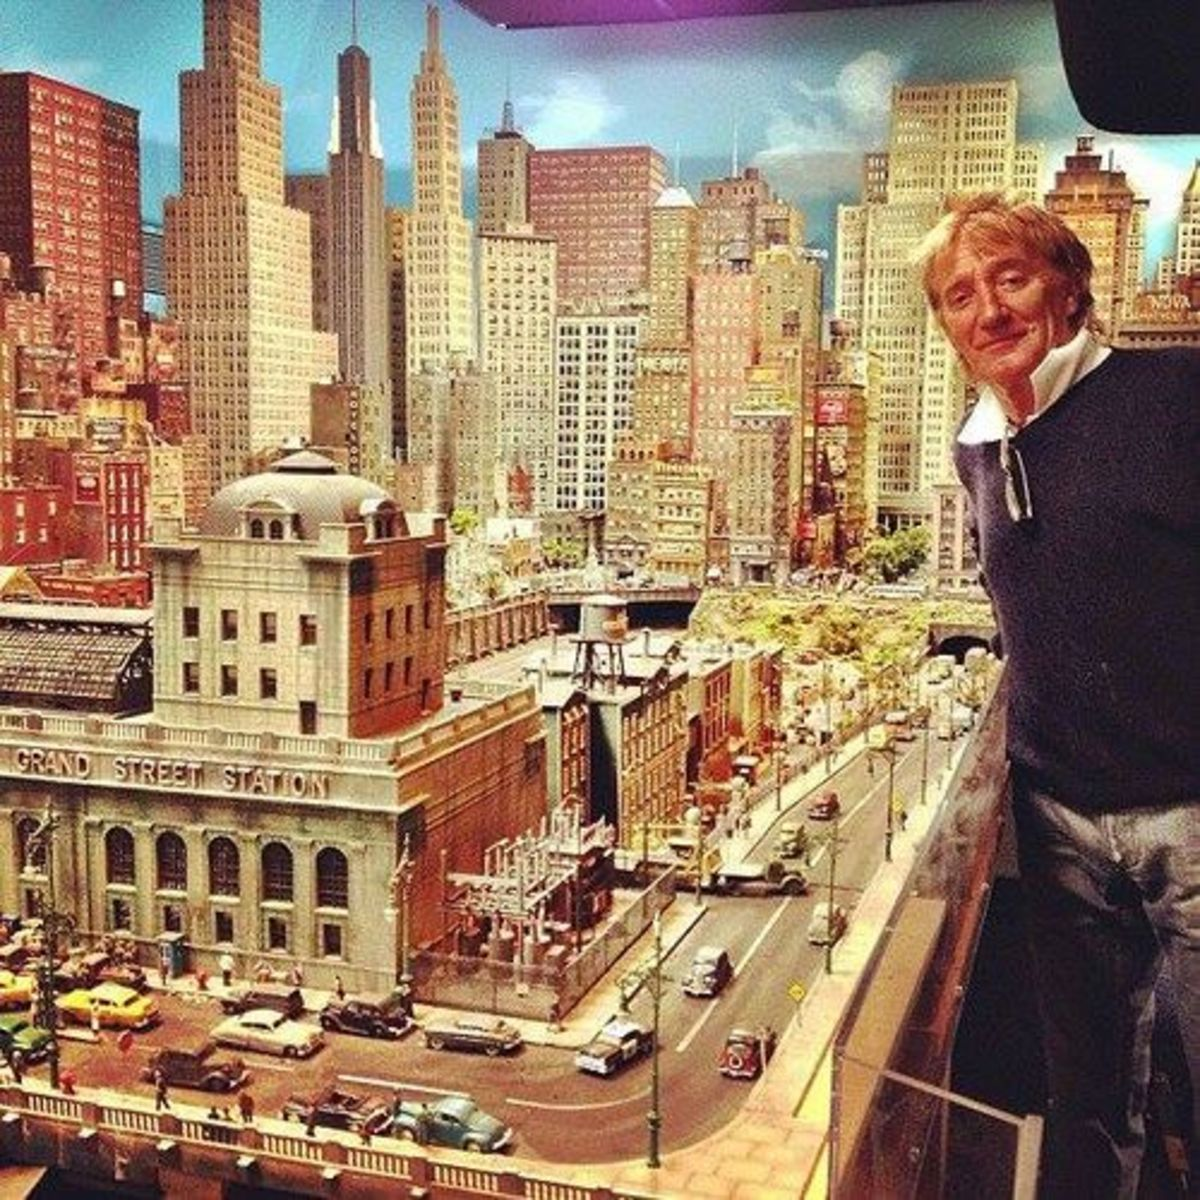 Rod Stewart posed in front of a portion of his model train set